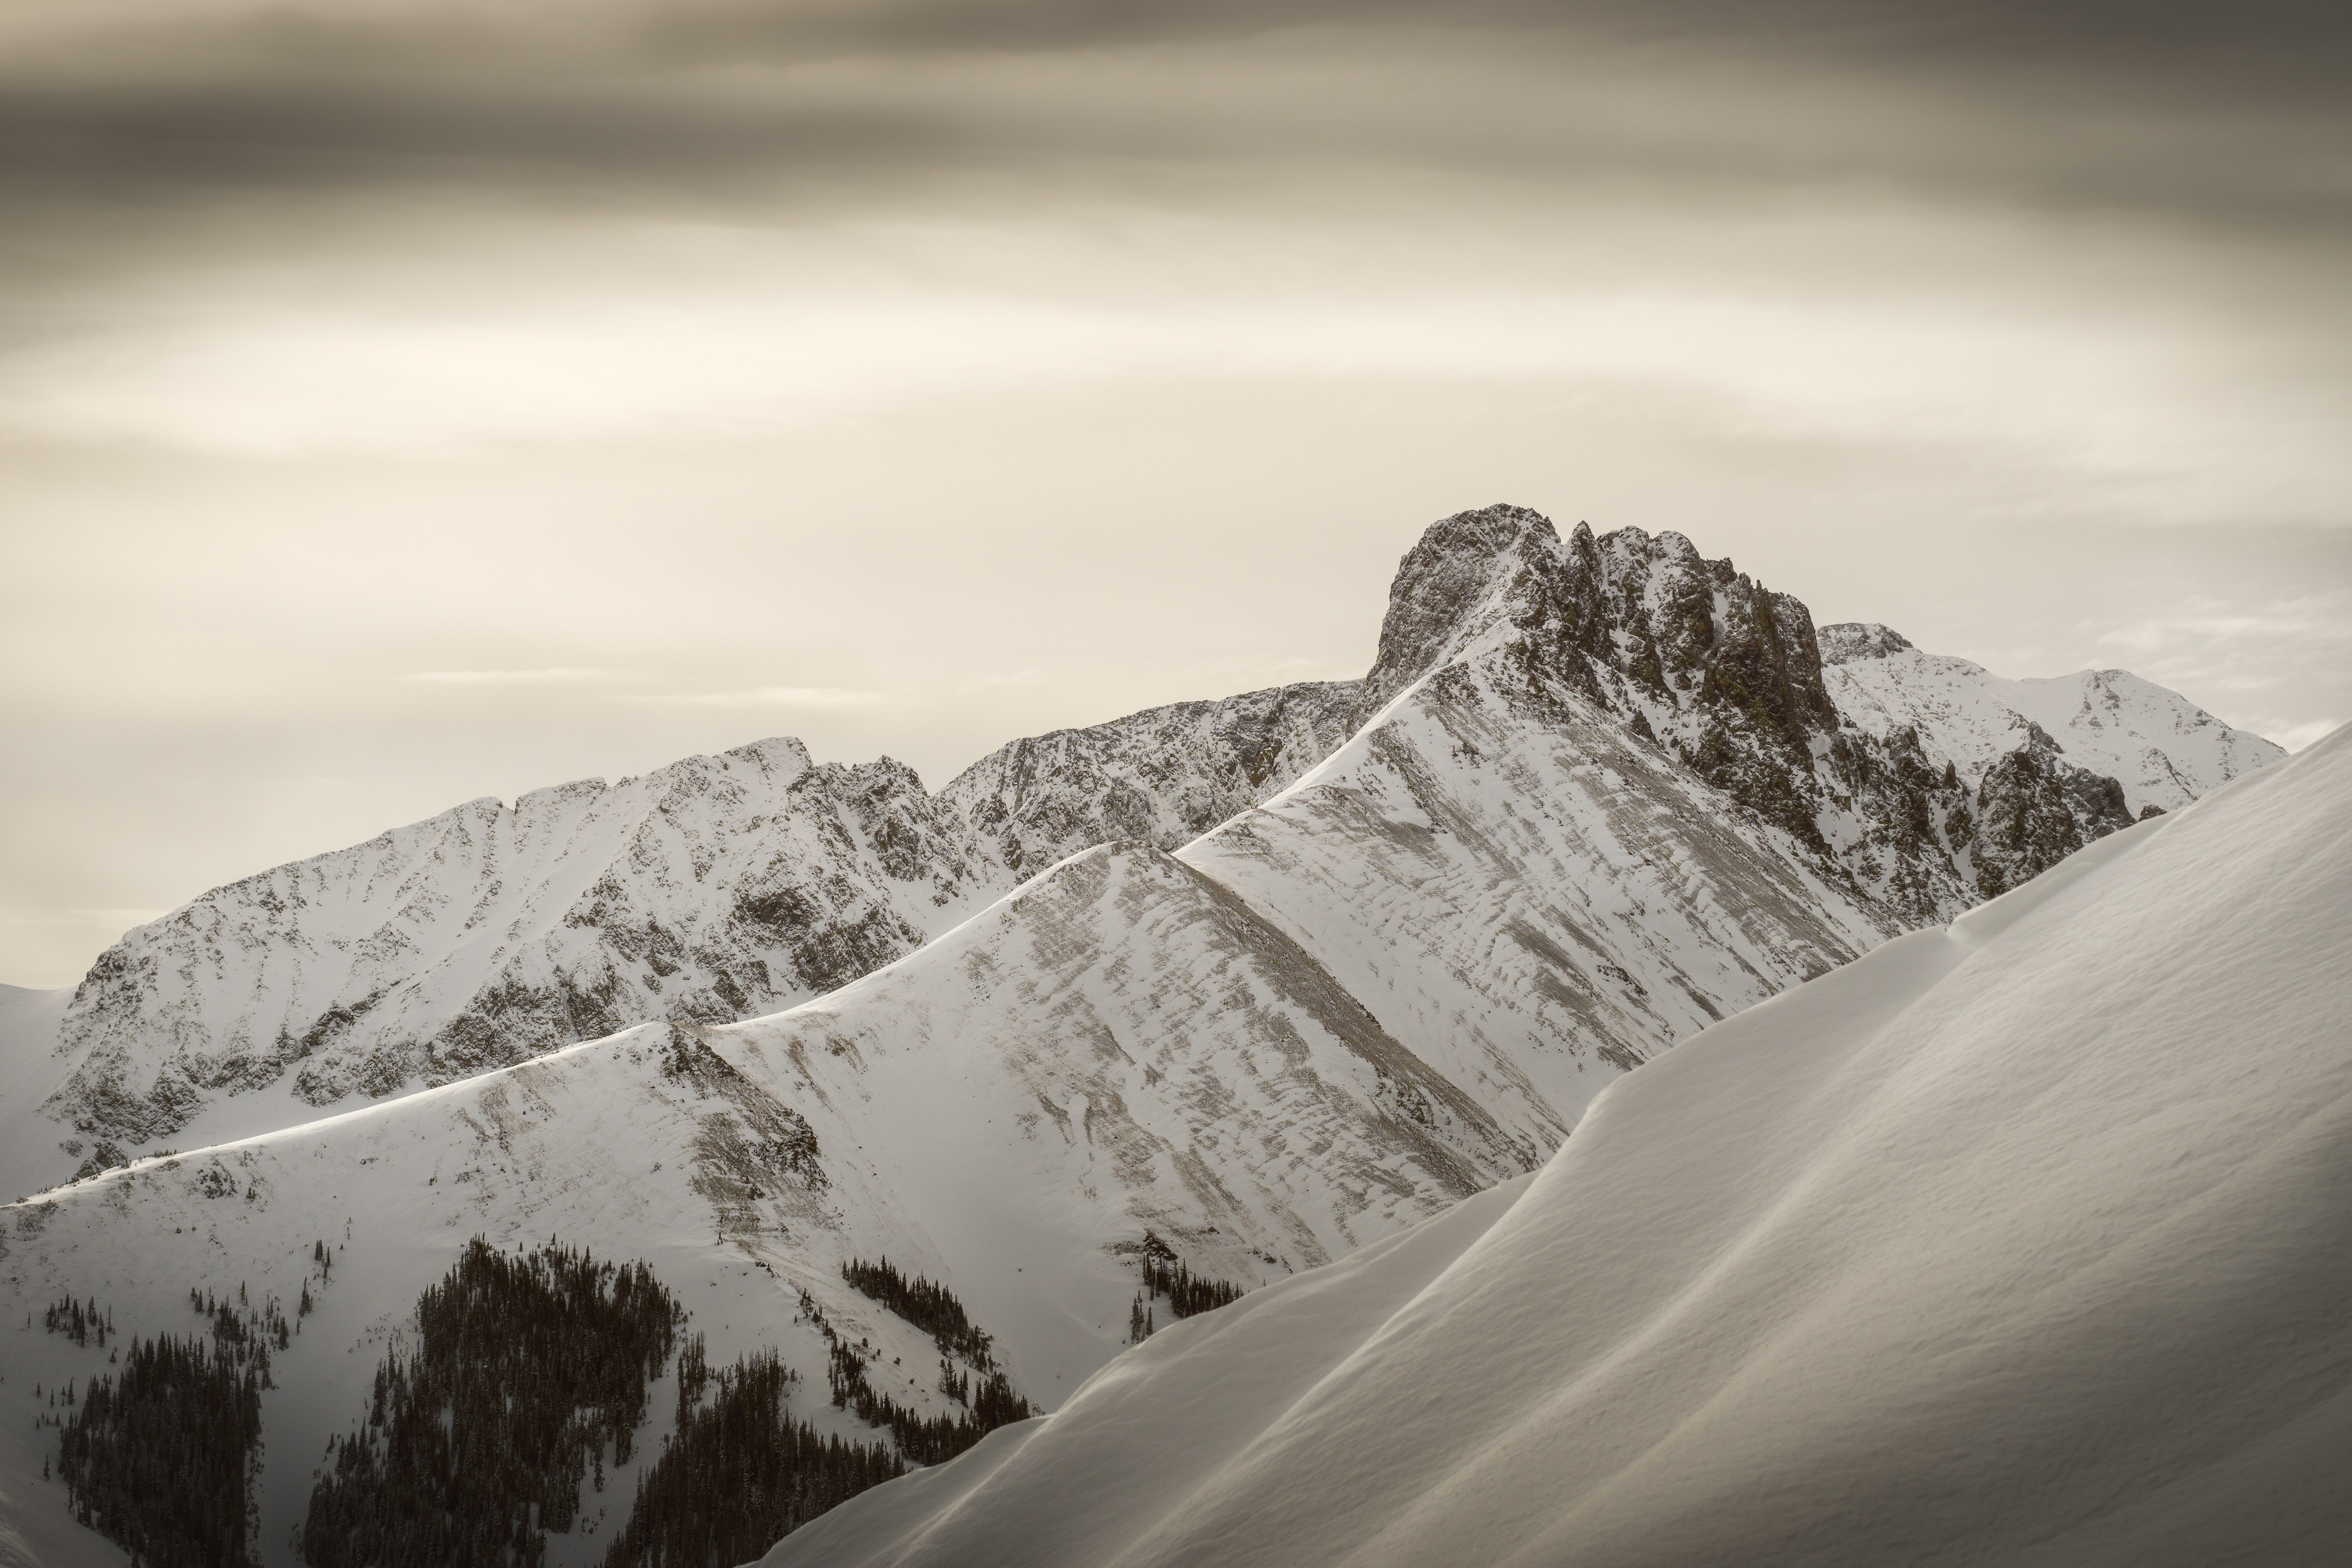 snow-covered mountains under gray clouds during daytime